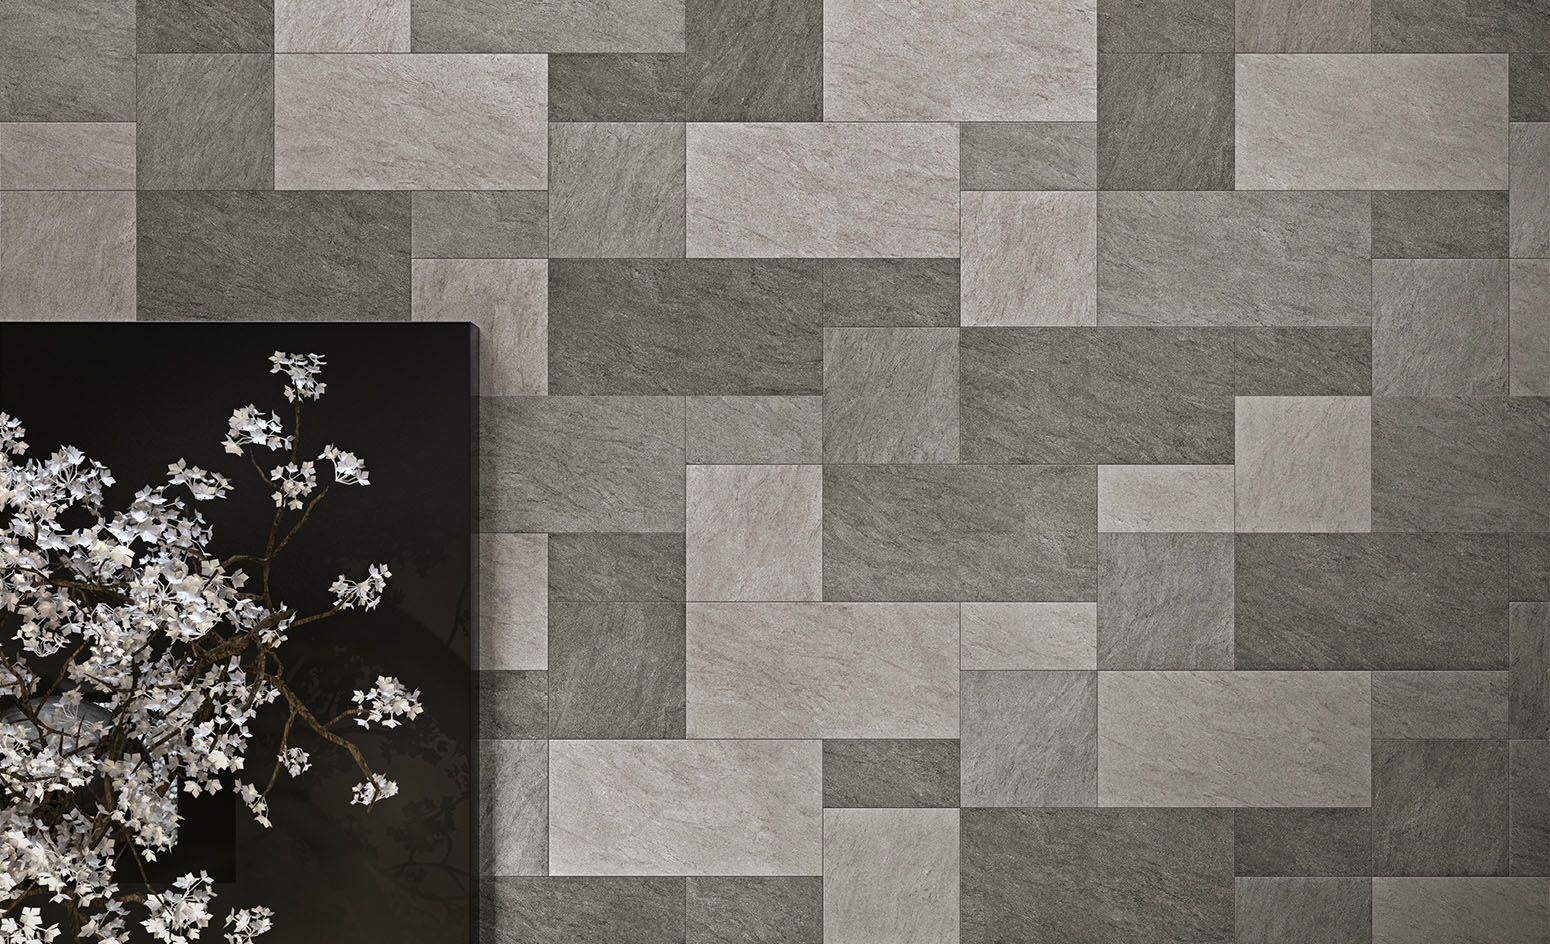 Basalt Tiles Lobby Floor - Italian Tile and Stone Dublin